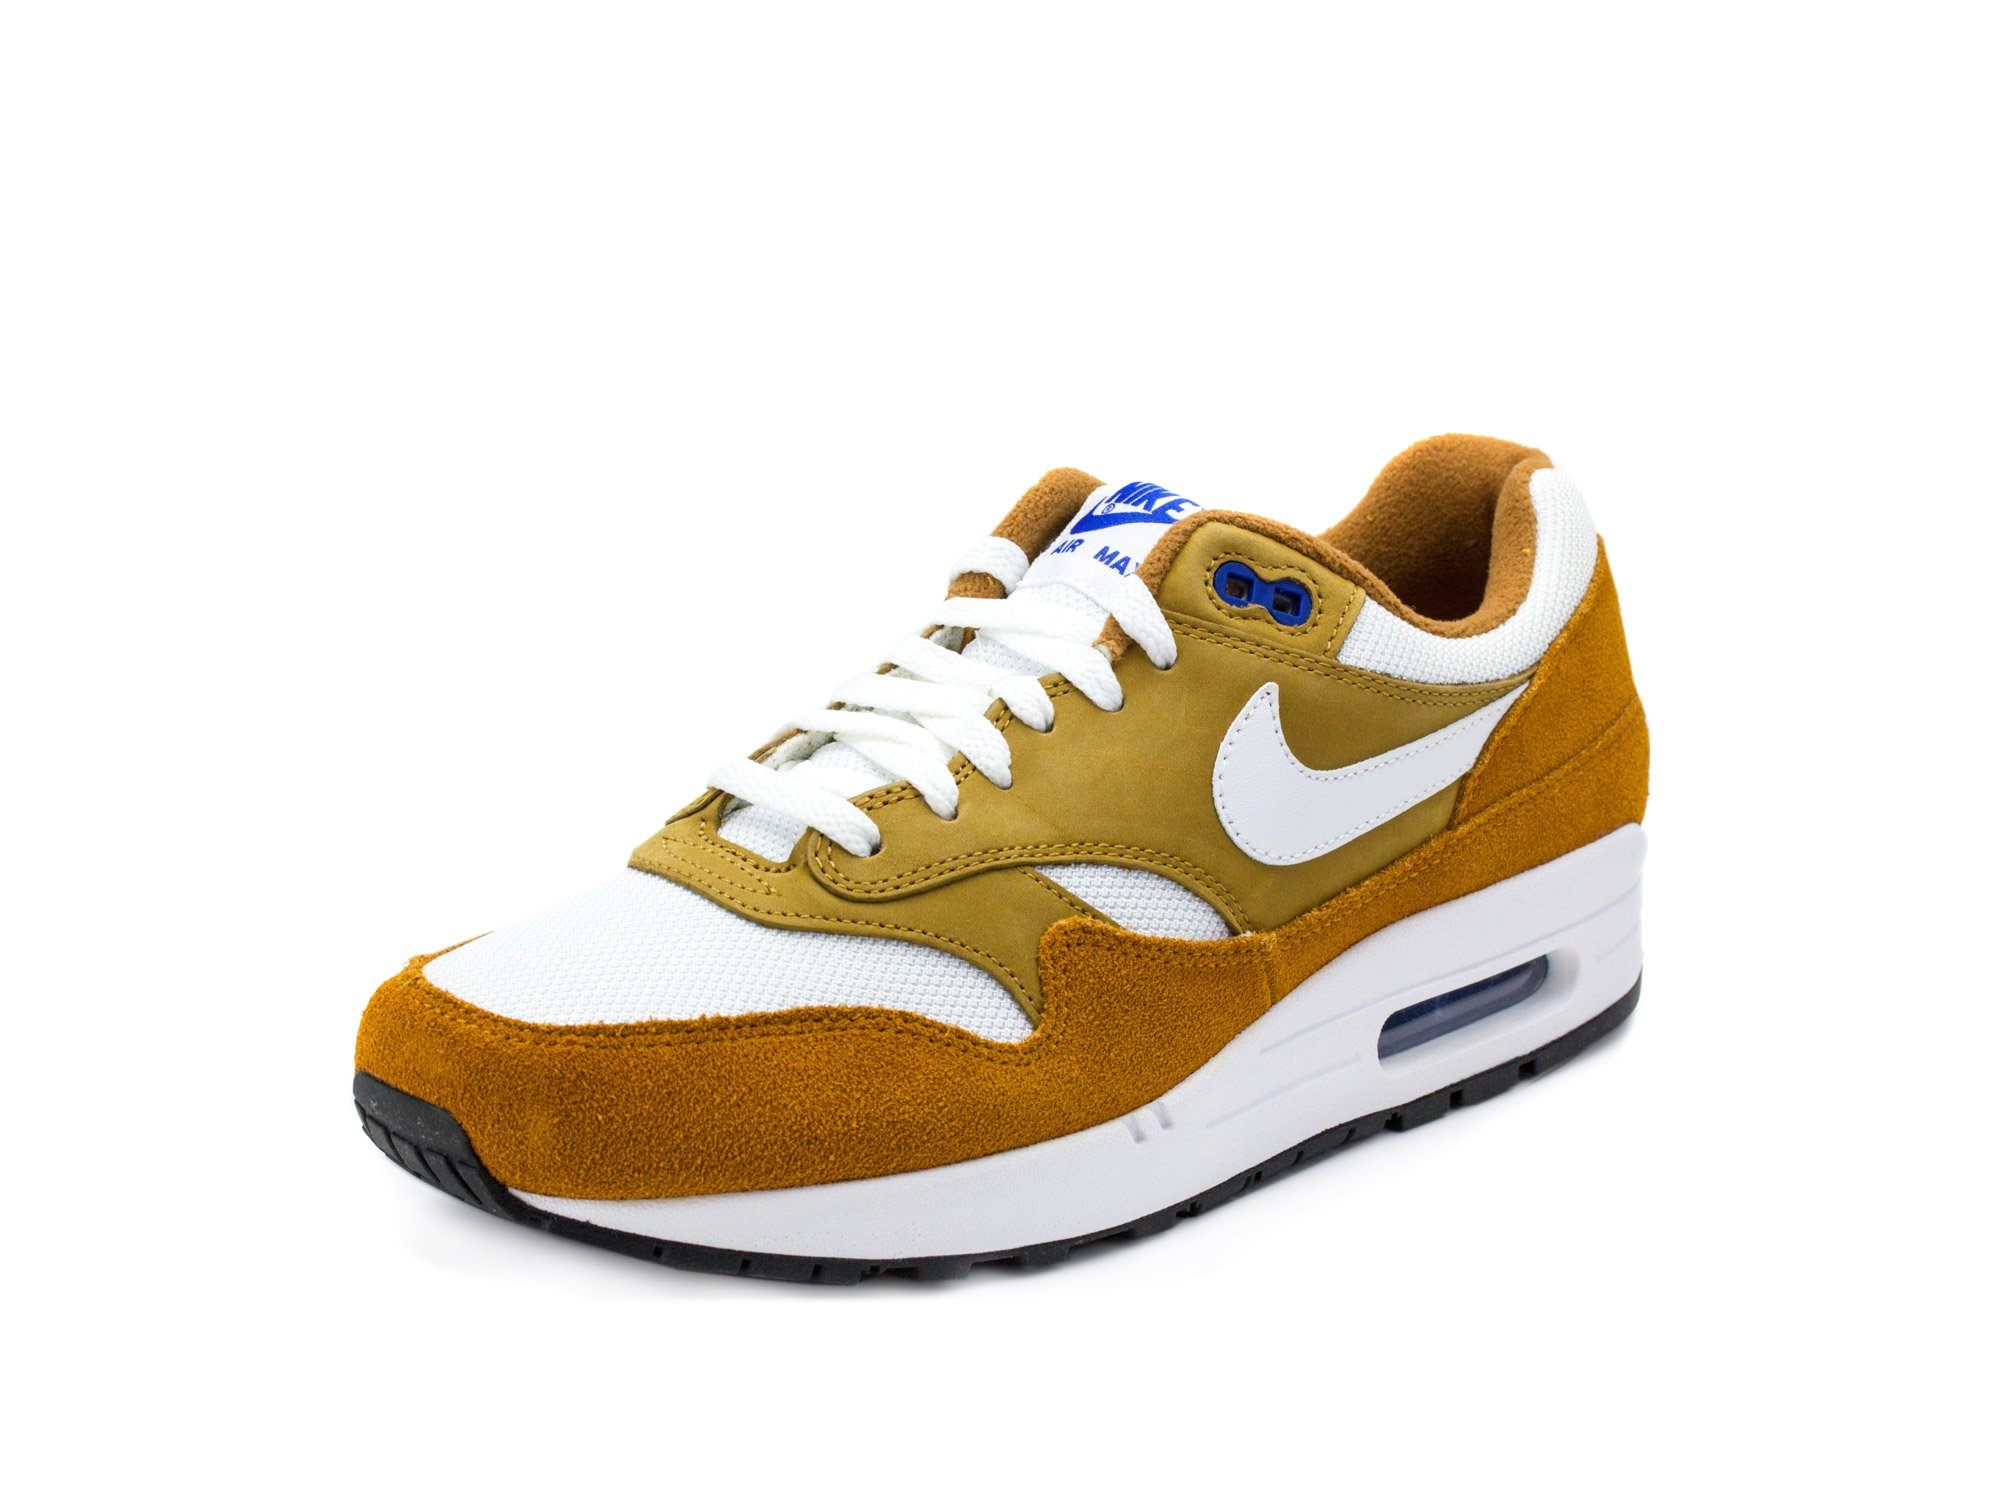 competitive price 1c367 b51a3 Galleon - Nike Mens Air Max 1 Premium Retro Curry Dark Curry White Suede  Size 10.5